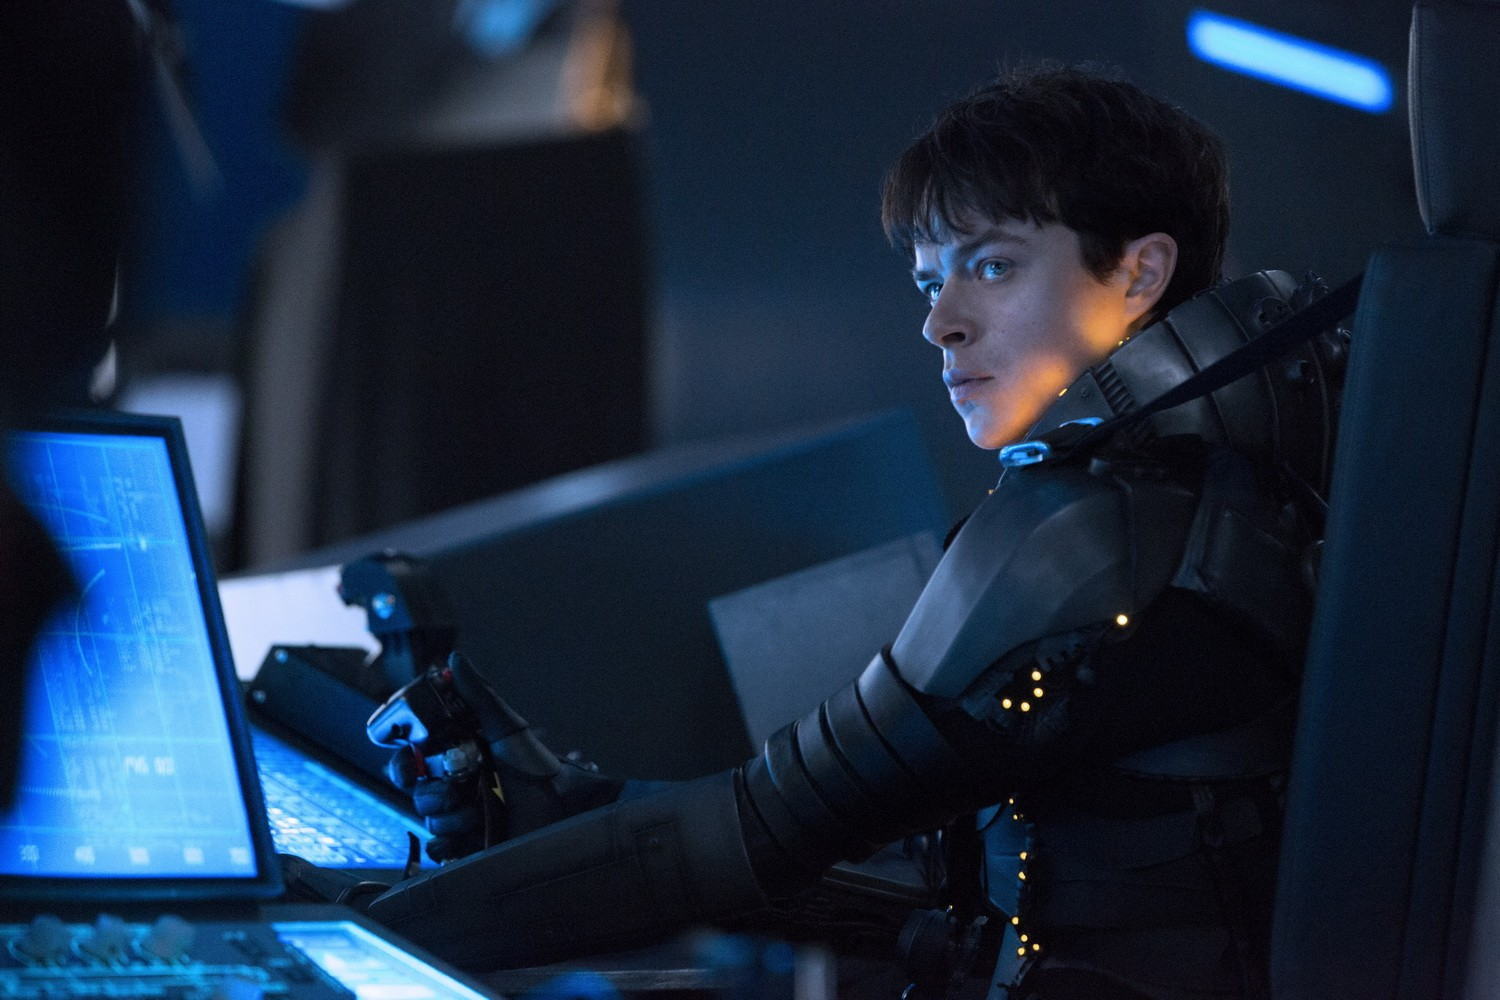 Кадр N136600 из фильма Валериан и город тысячи планет / Valerian and the City of a Thousand Planets (2017)